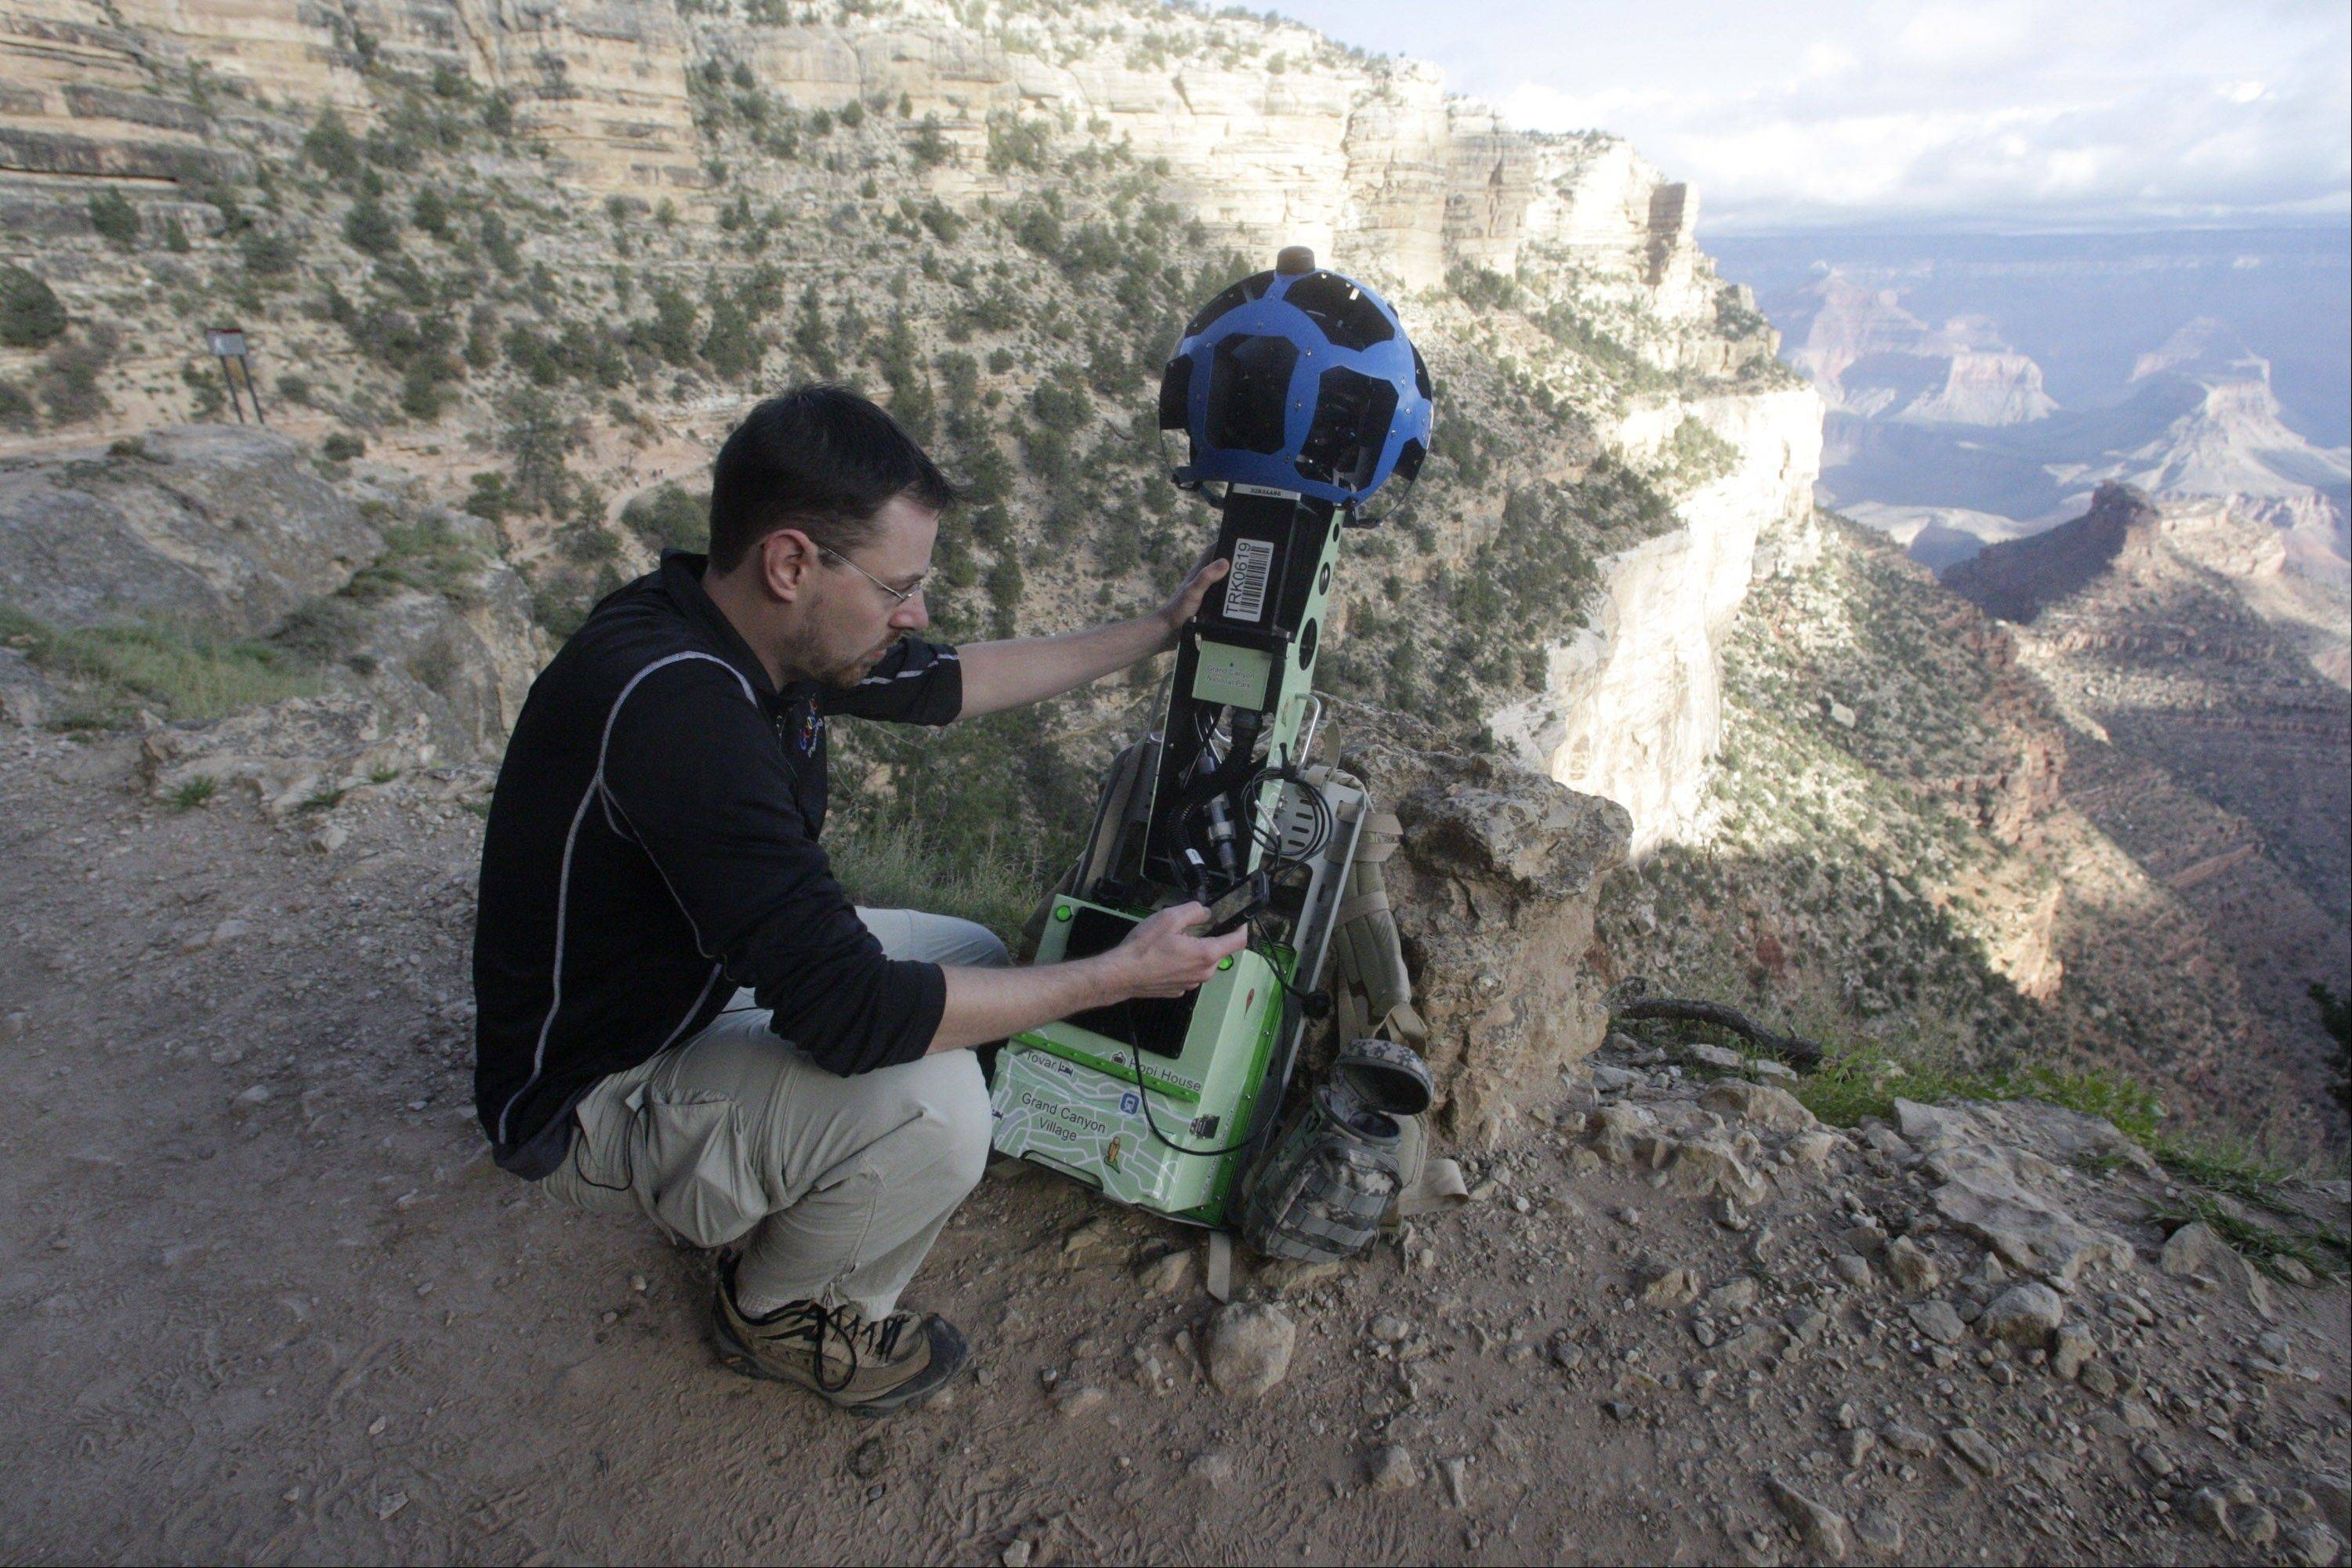 Google product manager Ryan Falor works with the Trekker during a demonstration for the media along the Bright Angel Trail at the South Rim of the Grand Canyon National Park. The search engine giant is using the nearly 40-pound, backpack-sized camera unit to showcase the Grand Canyon's most popular hiking trails on the South Rim and other off-road sites.